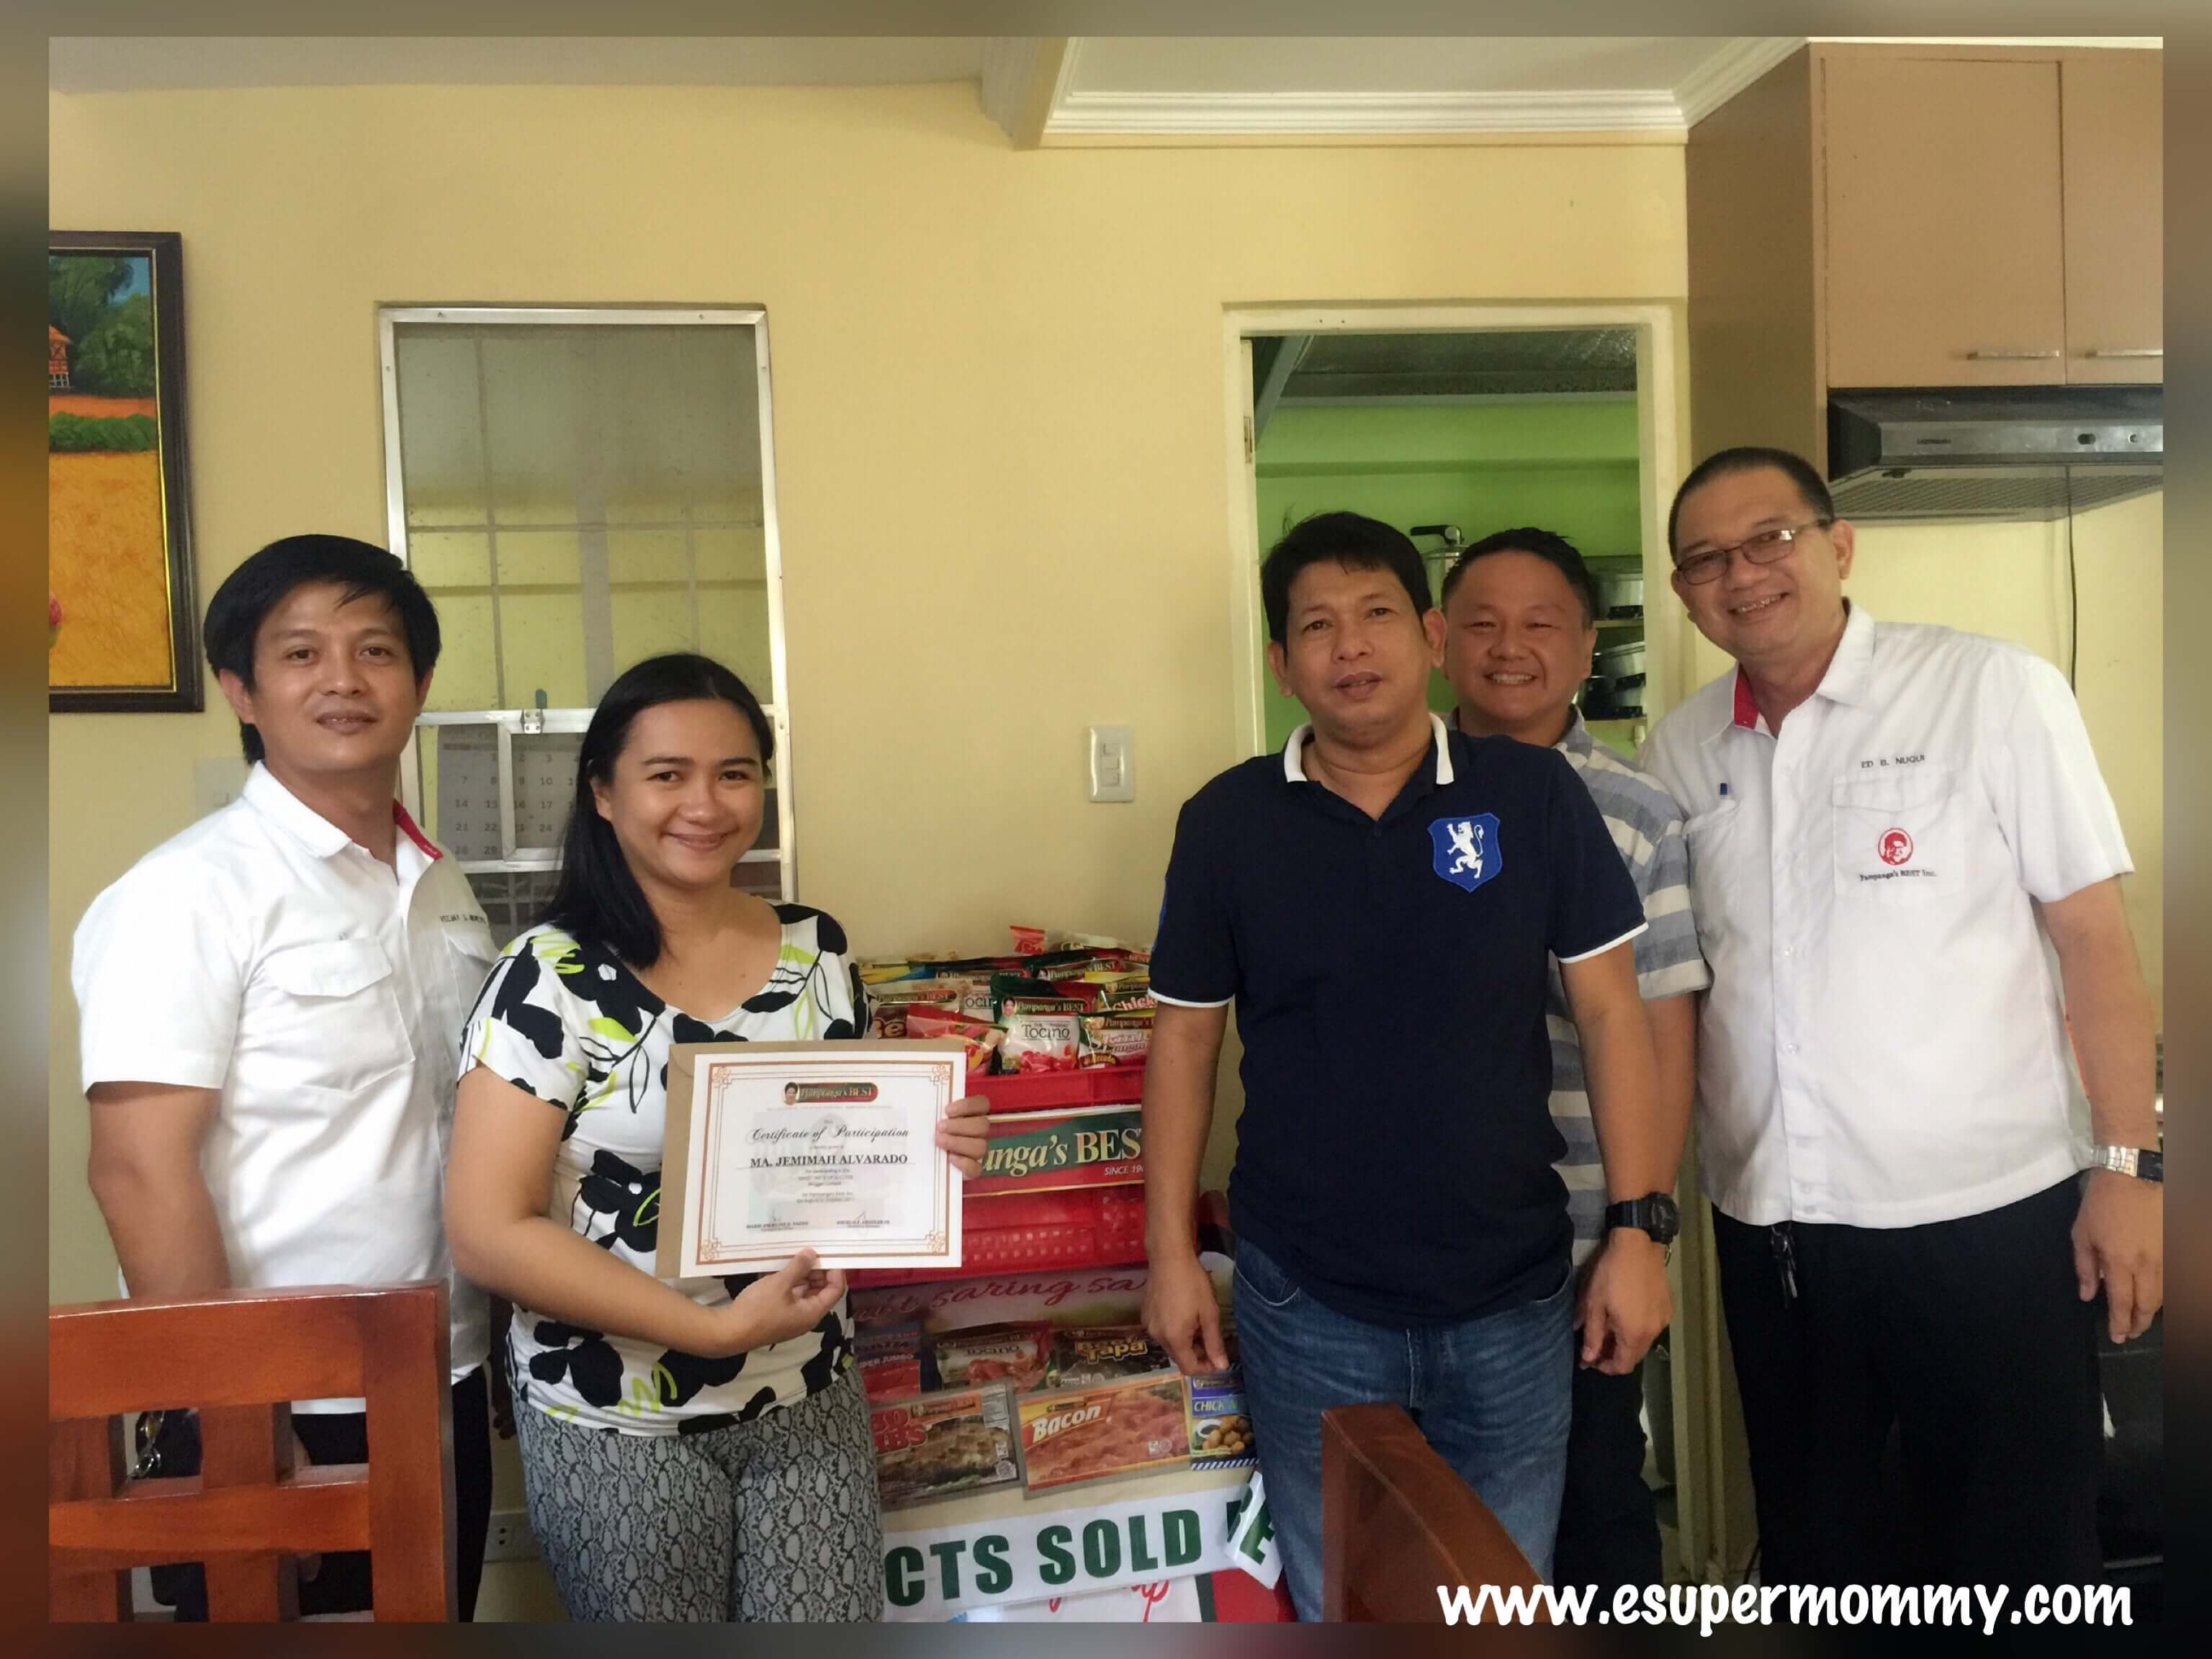 Pampanga's Best Team (from Left-to-right): Mr. Veejay Montoya- District Sales Supervisor, Officer, Mommy Jem, (Sorry forgot the name of the mister in black shirt), Mr. Angelo Angeles Jr. - Marketing Manager and Mr. Edwin Nuqui-Regional Sales Manager.